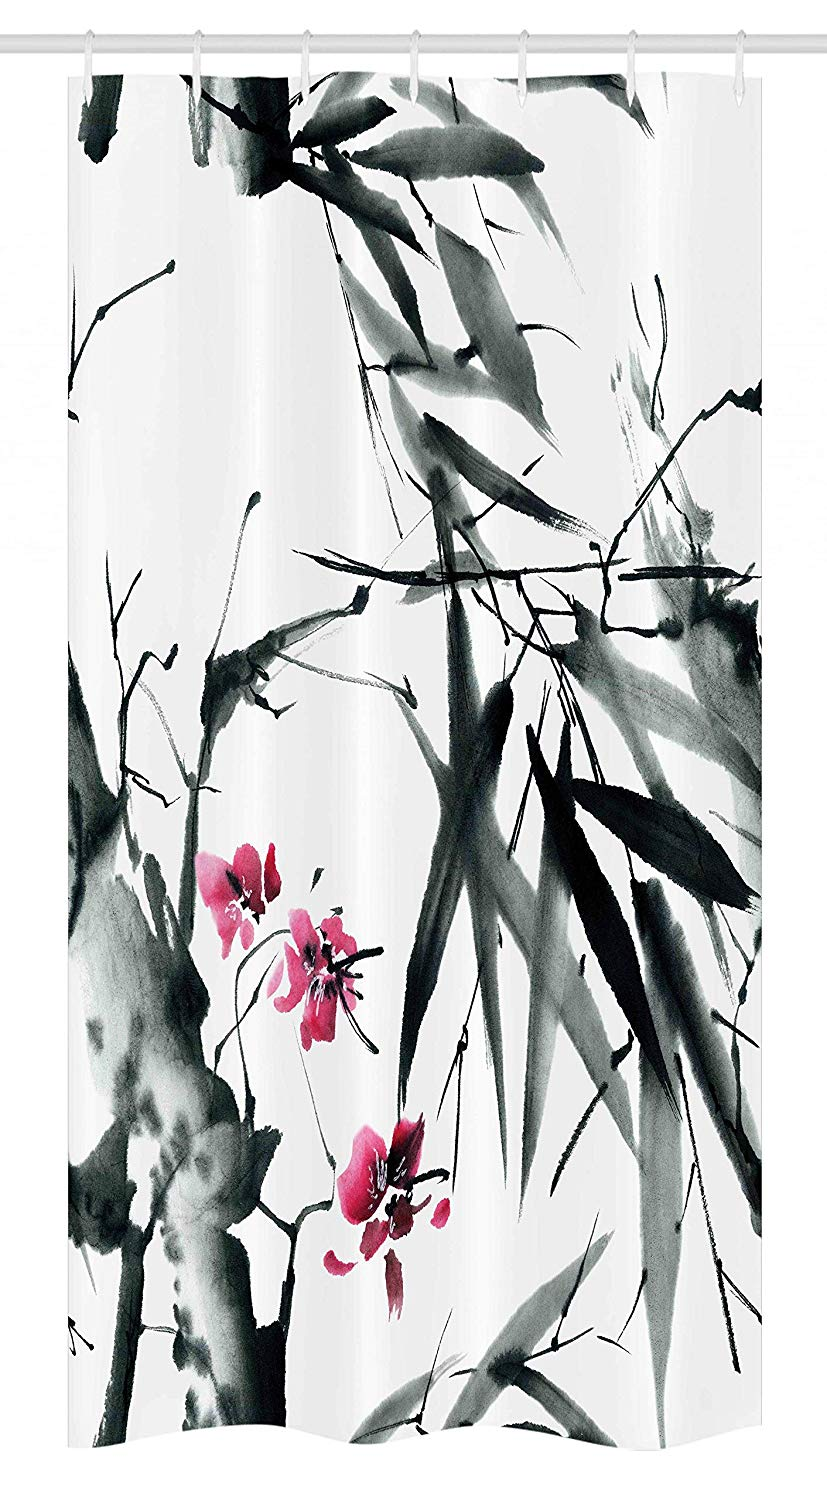 Ambesonne Japanese Stall Shower Curtain, Natural Bamboo Stems Cherry Blossom Japanese Inspired Folk Print, Fabric Bathroom Decor Set with Hooks, 36